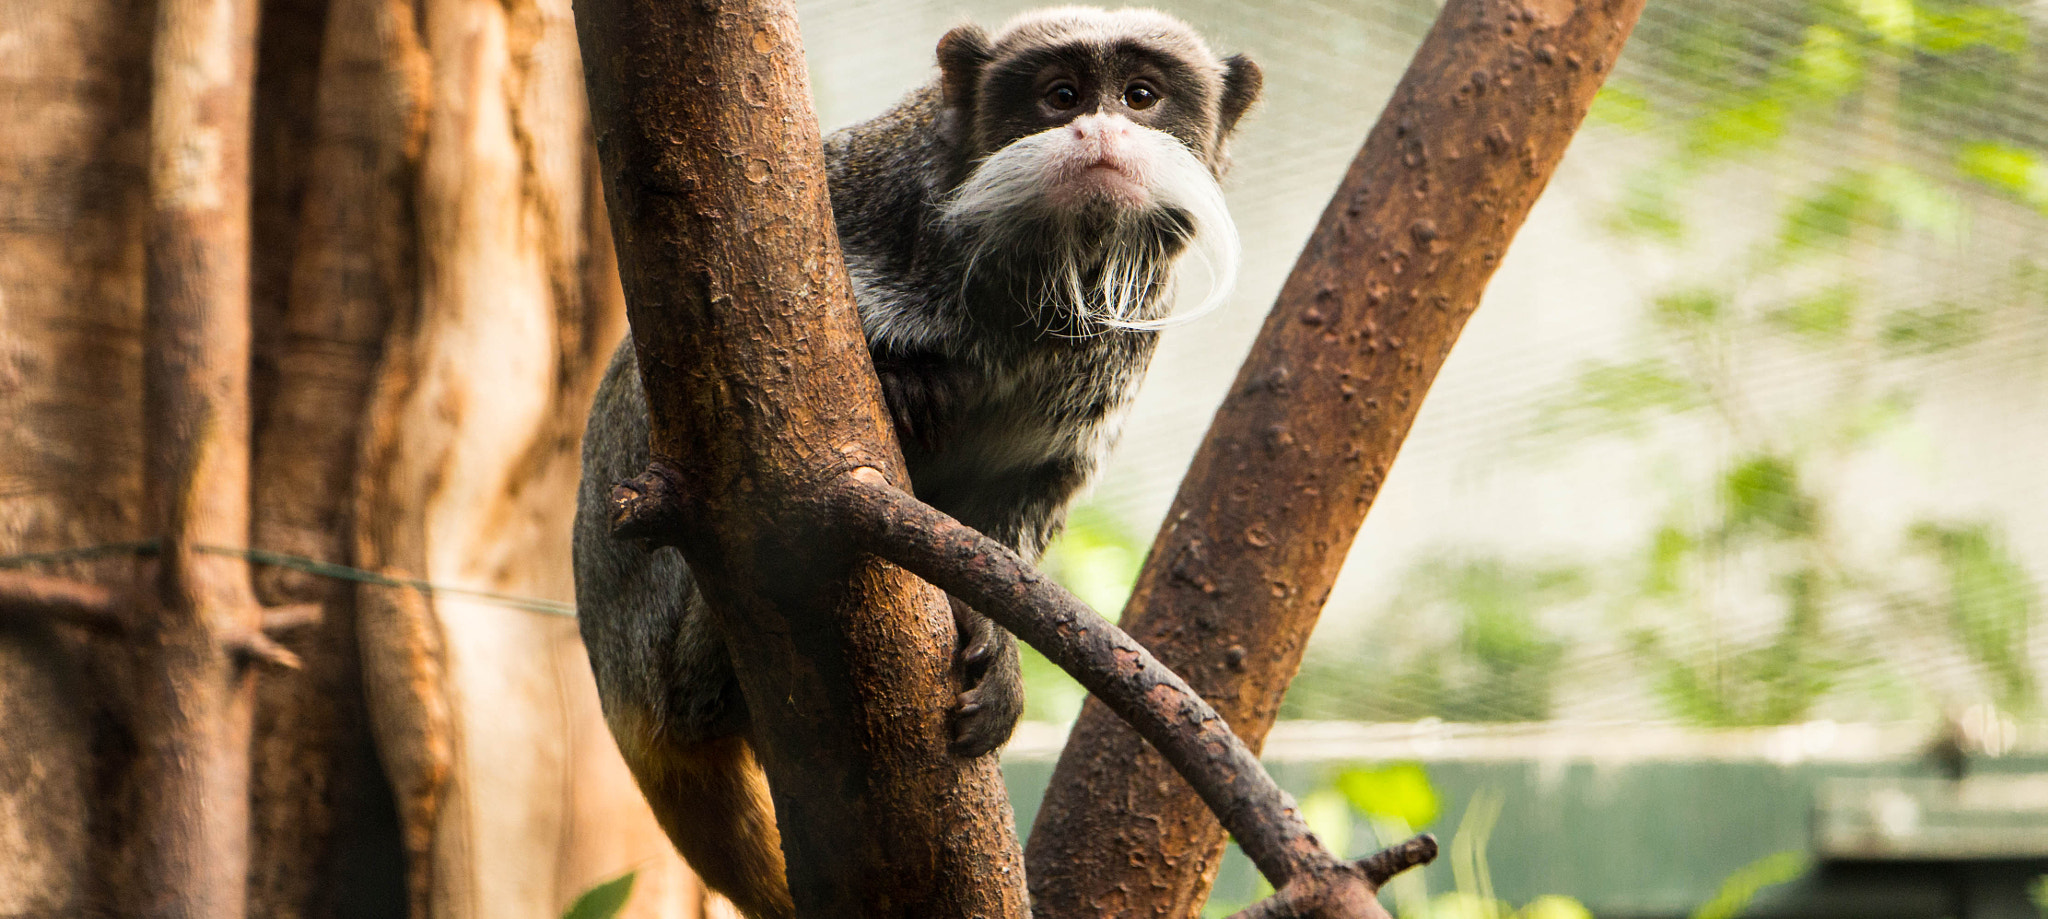 Photograph emperor tamarin by marcgaw  on 500px